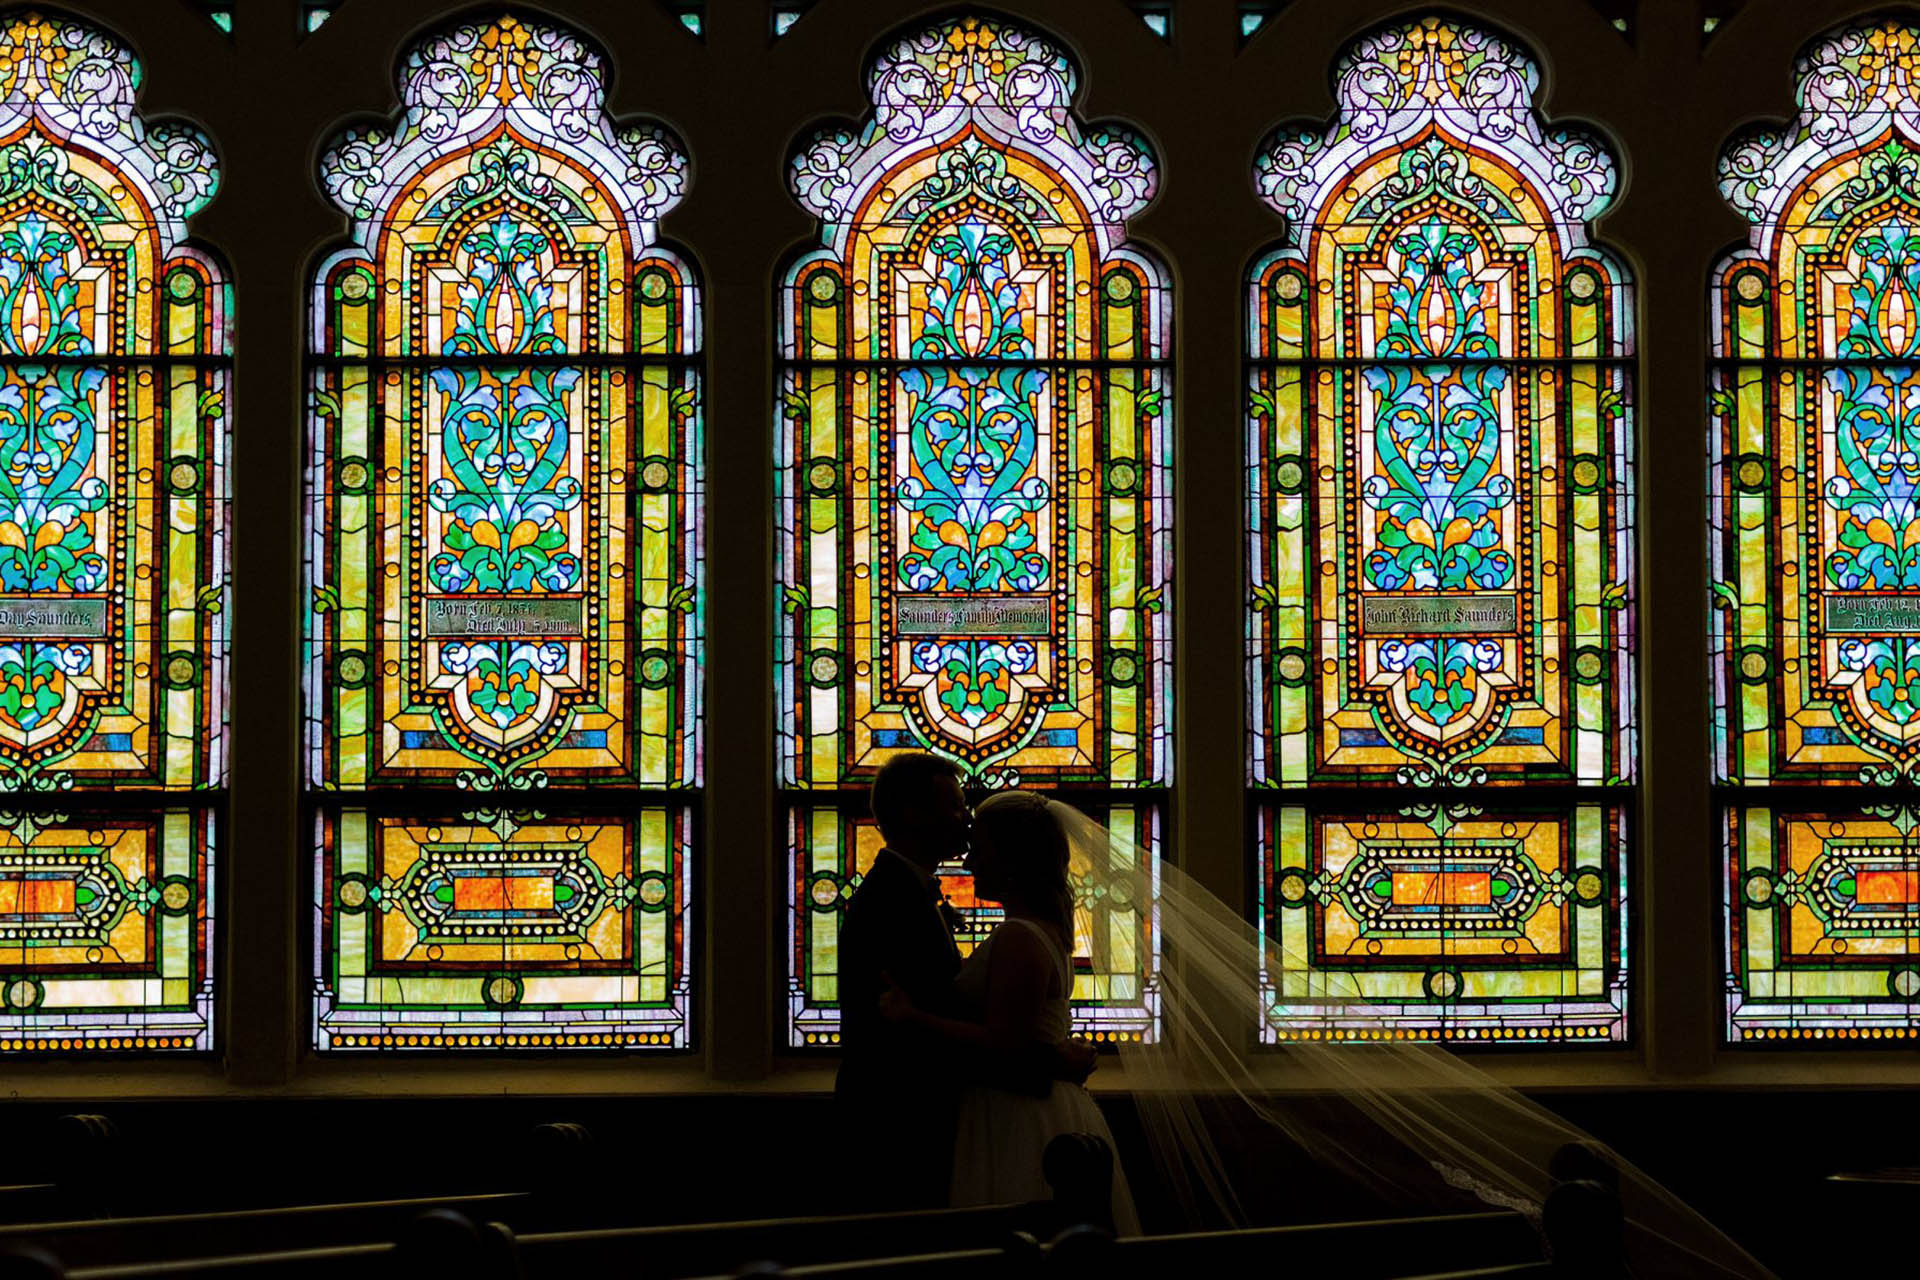 Bride and groom kissing in front of stained glass windows